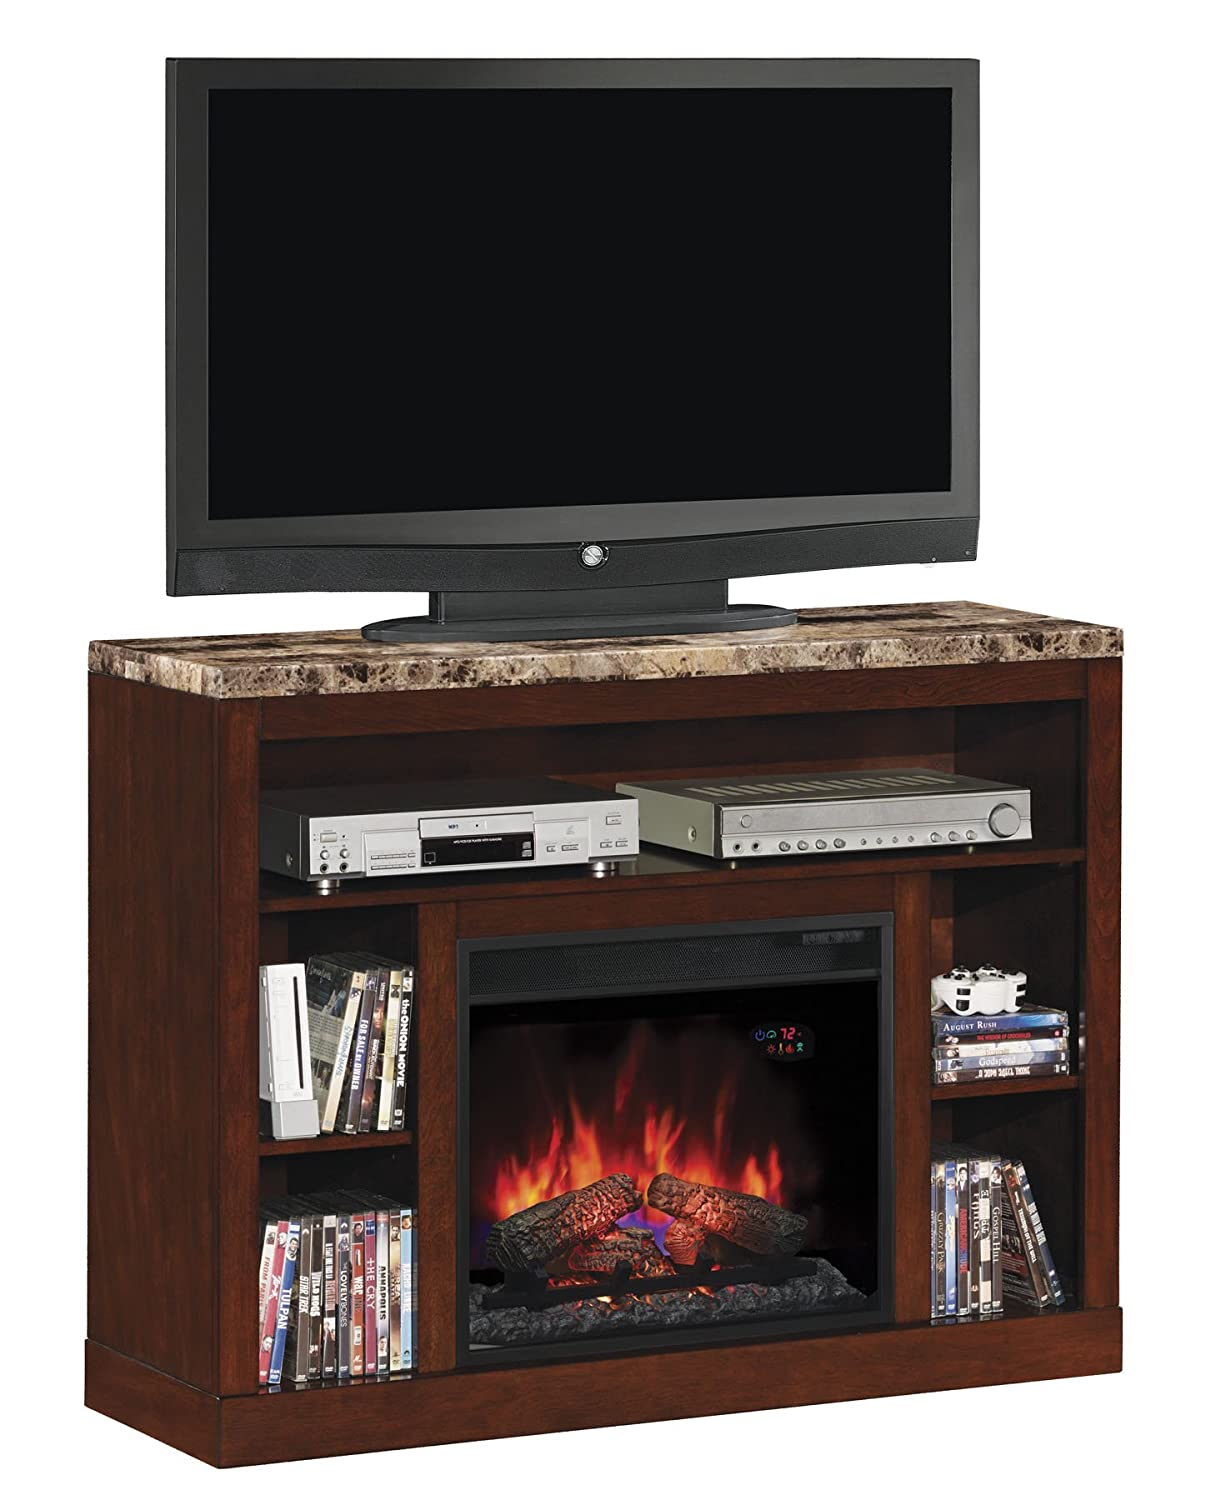 Amazon.com: ClassicFlame 23MM1824-C244 Adams TV Stand for TVs up ...